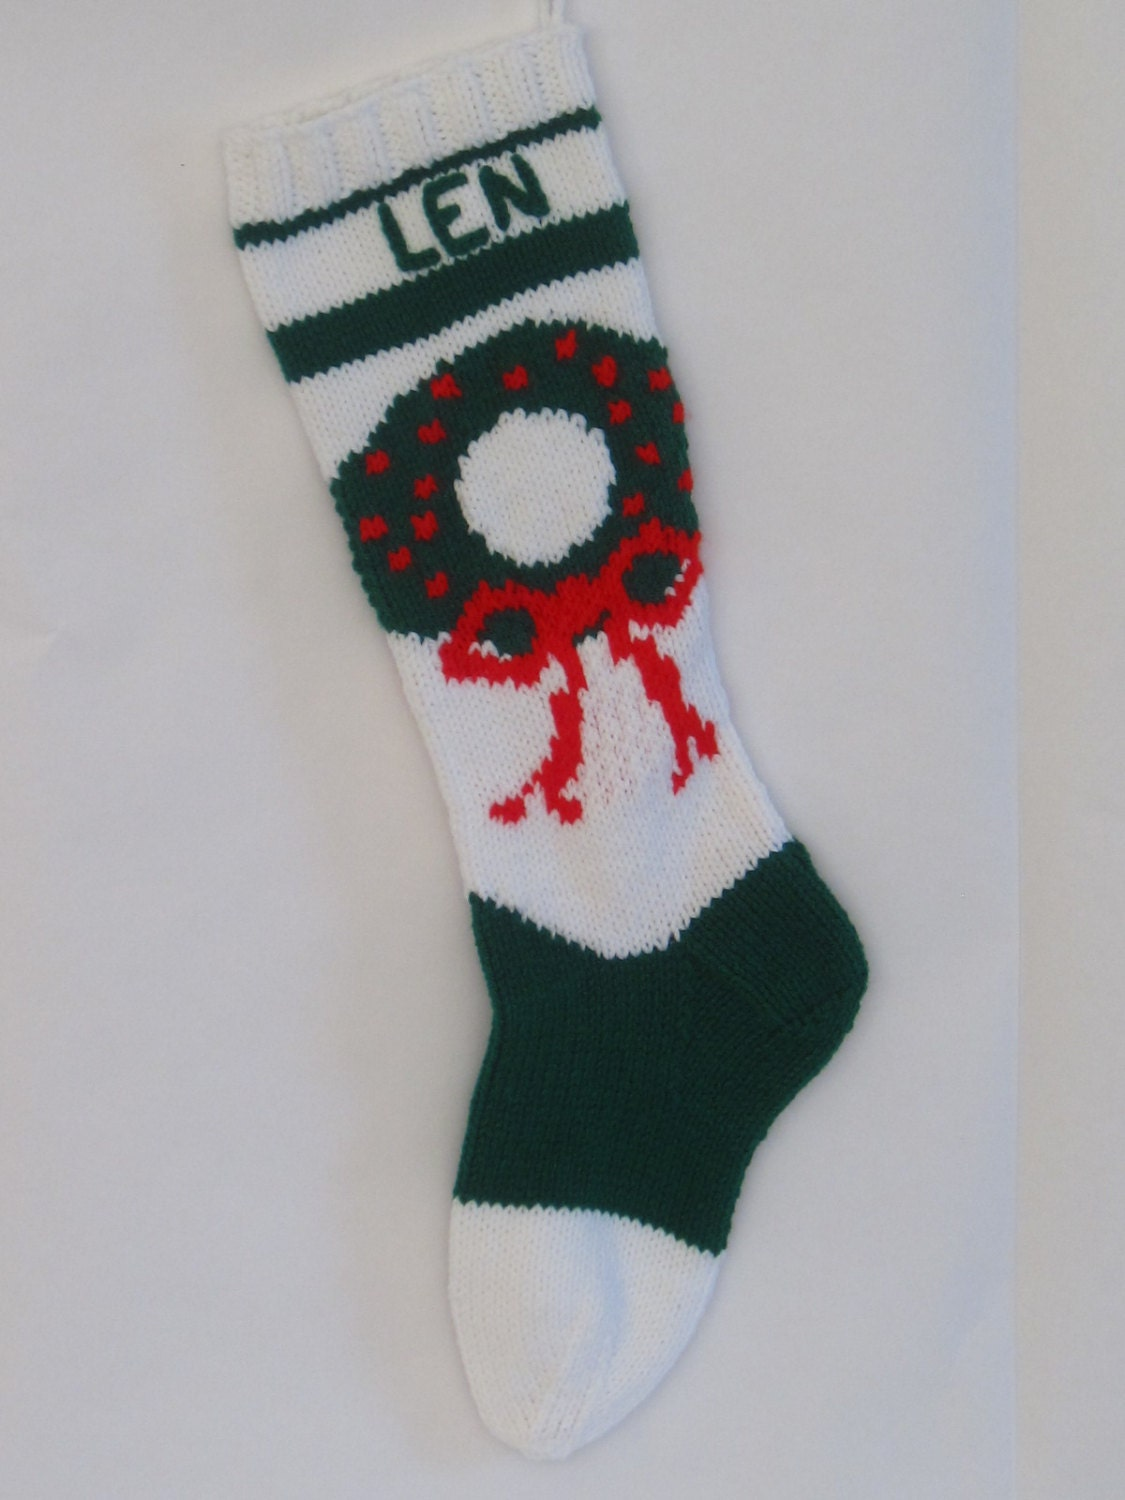 Personalized Knitted Christmas Wreath Stocking